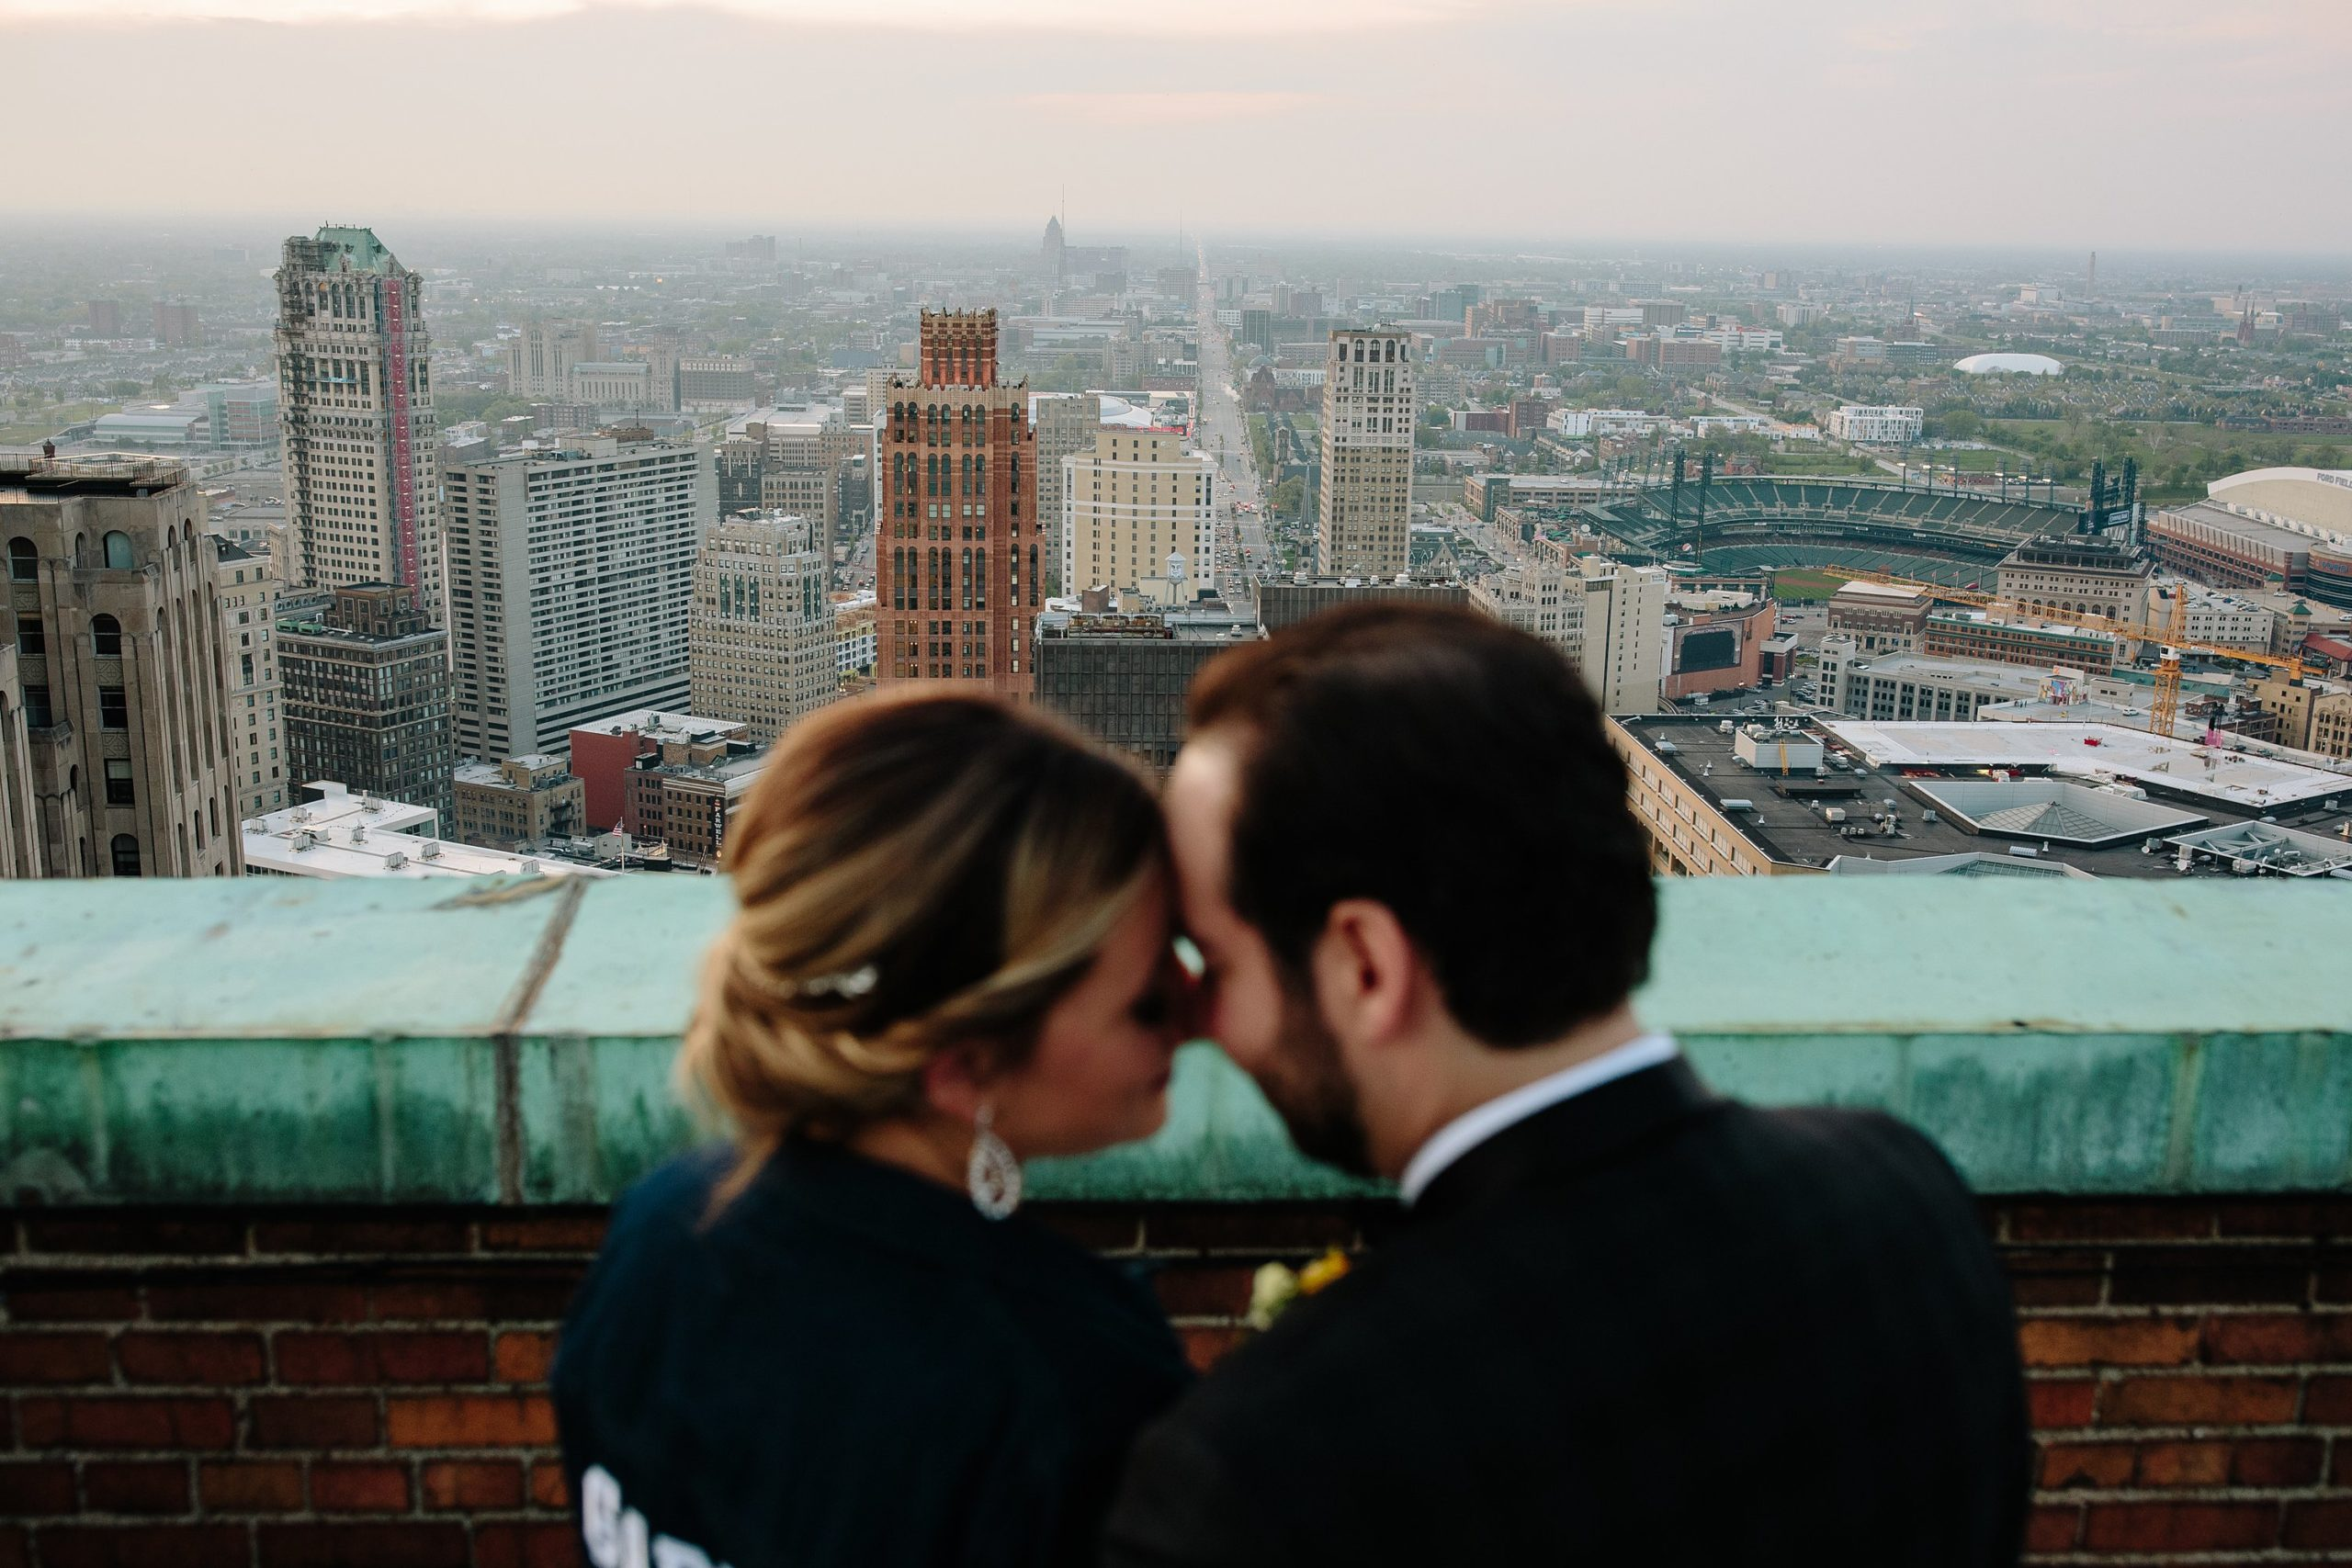 A bride and groom overlooking the city of Detroit.